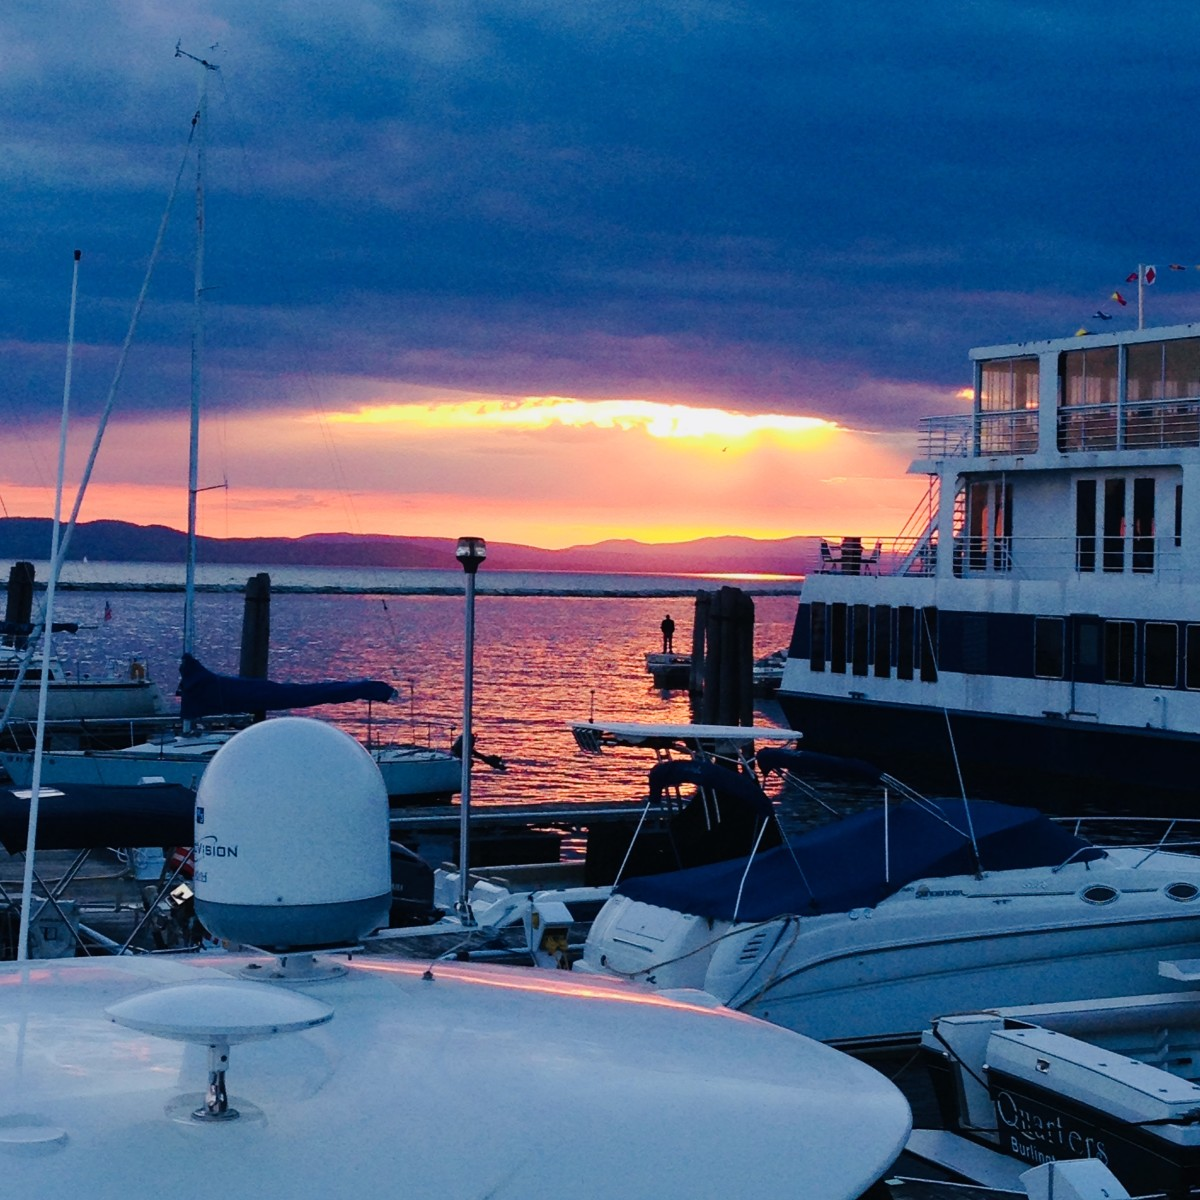 A Local's Guide to the Best Places to Visit in Burlington, Vermont